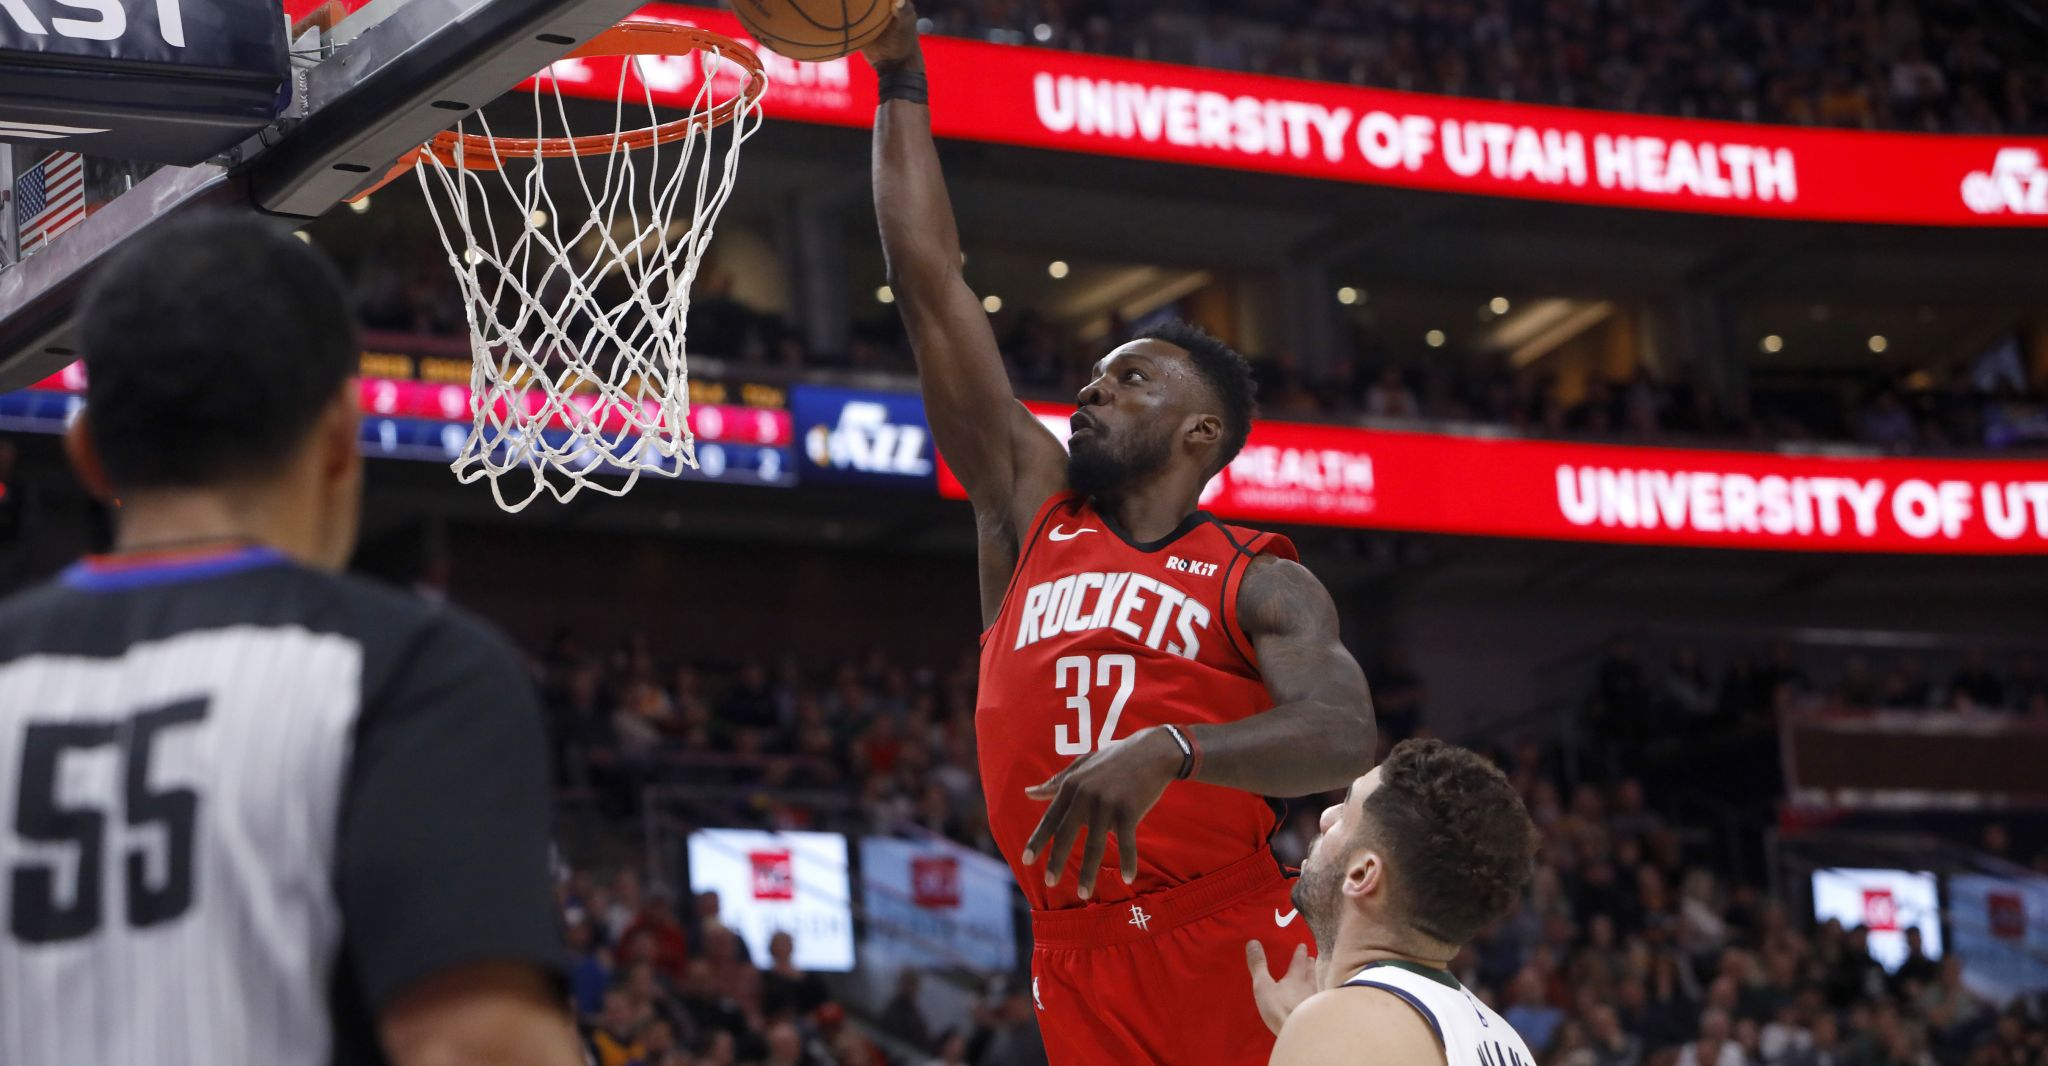 Rockets' Jeff Green comfortable playing center - HoustonChronicle.com